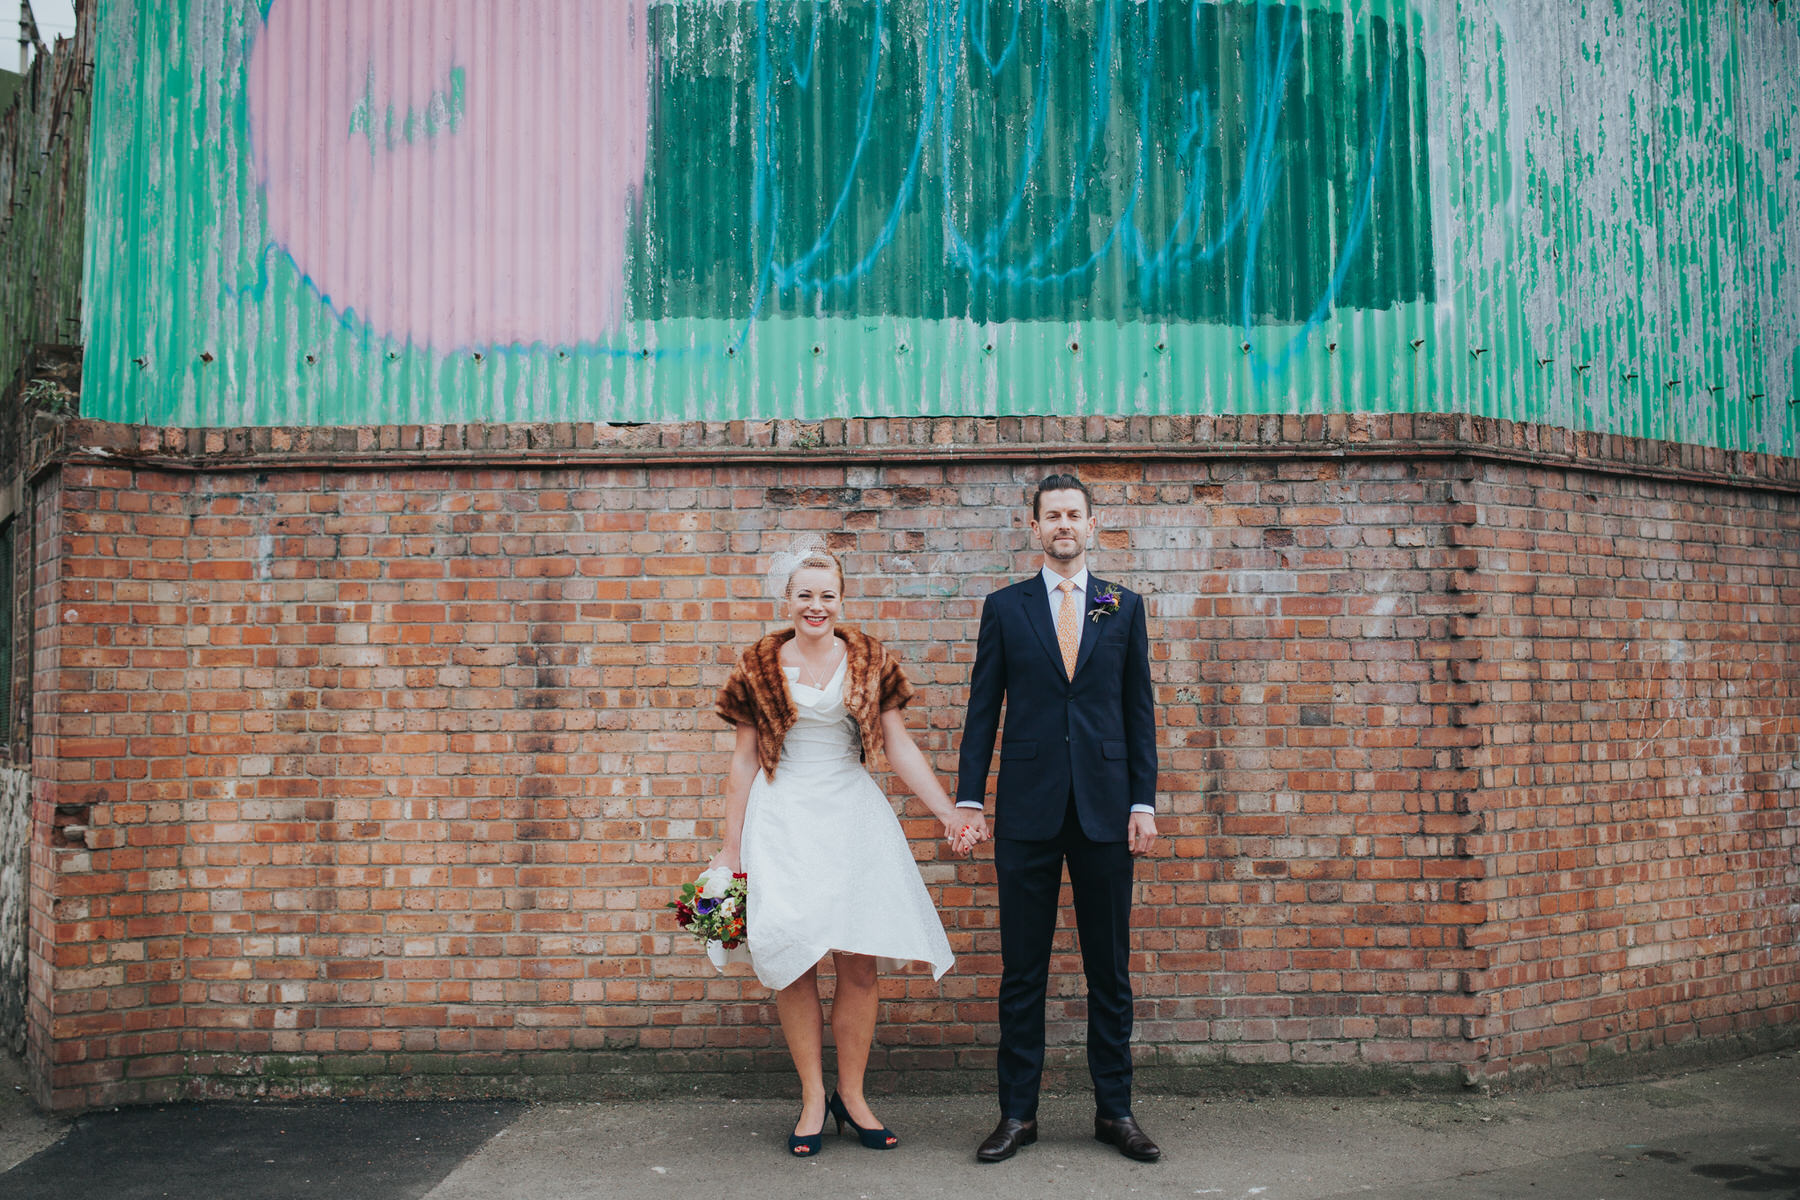 MS-Londesborough-Pub-wedding-Hackney-alternative-photographer-50-quirky-bride-groom-holding-hands-against-urban-grafitti-wall-London.jpg